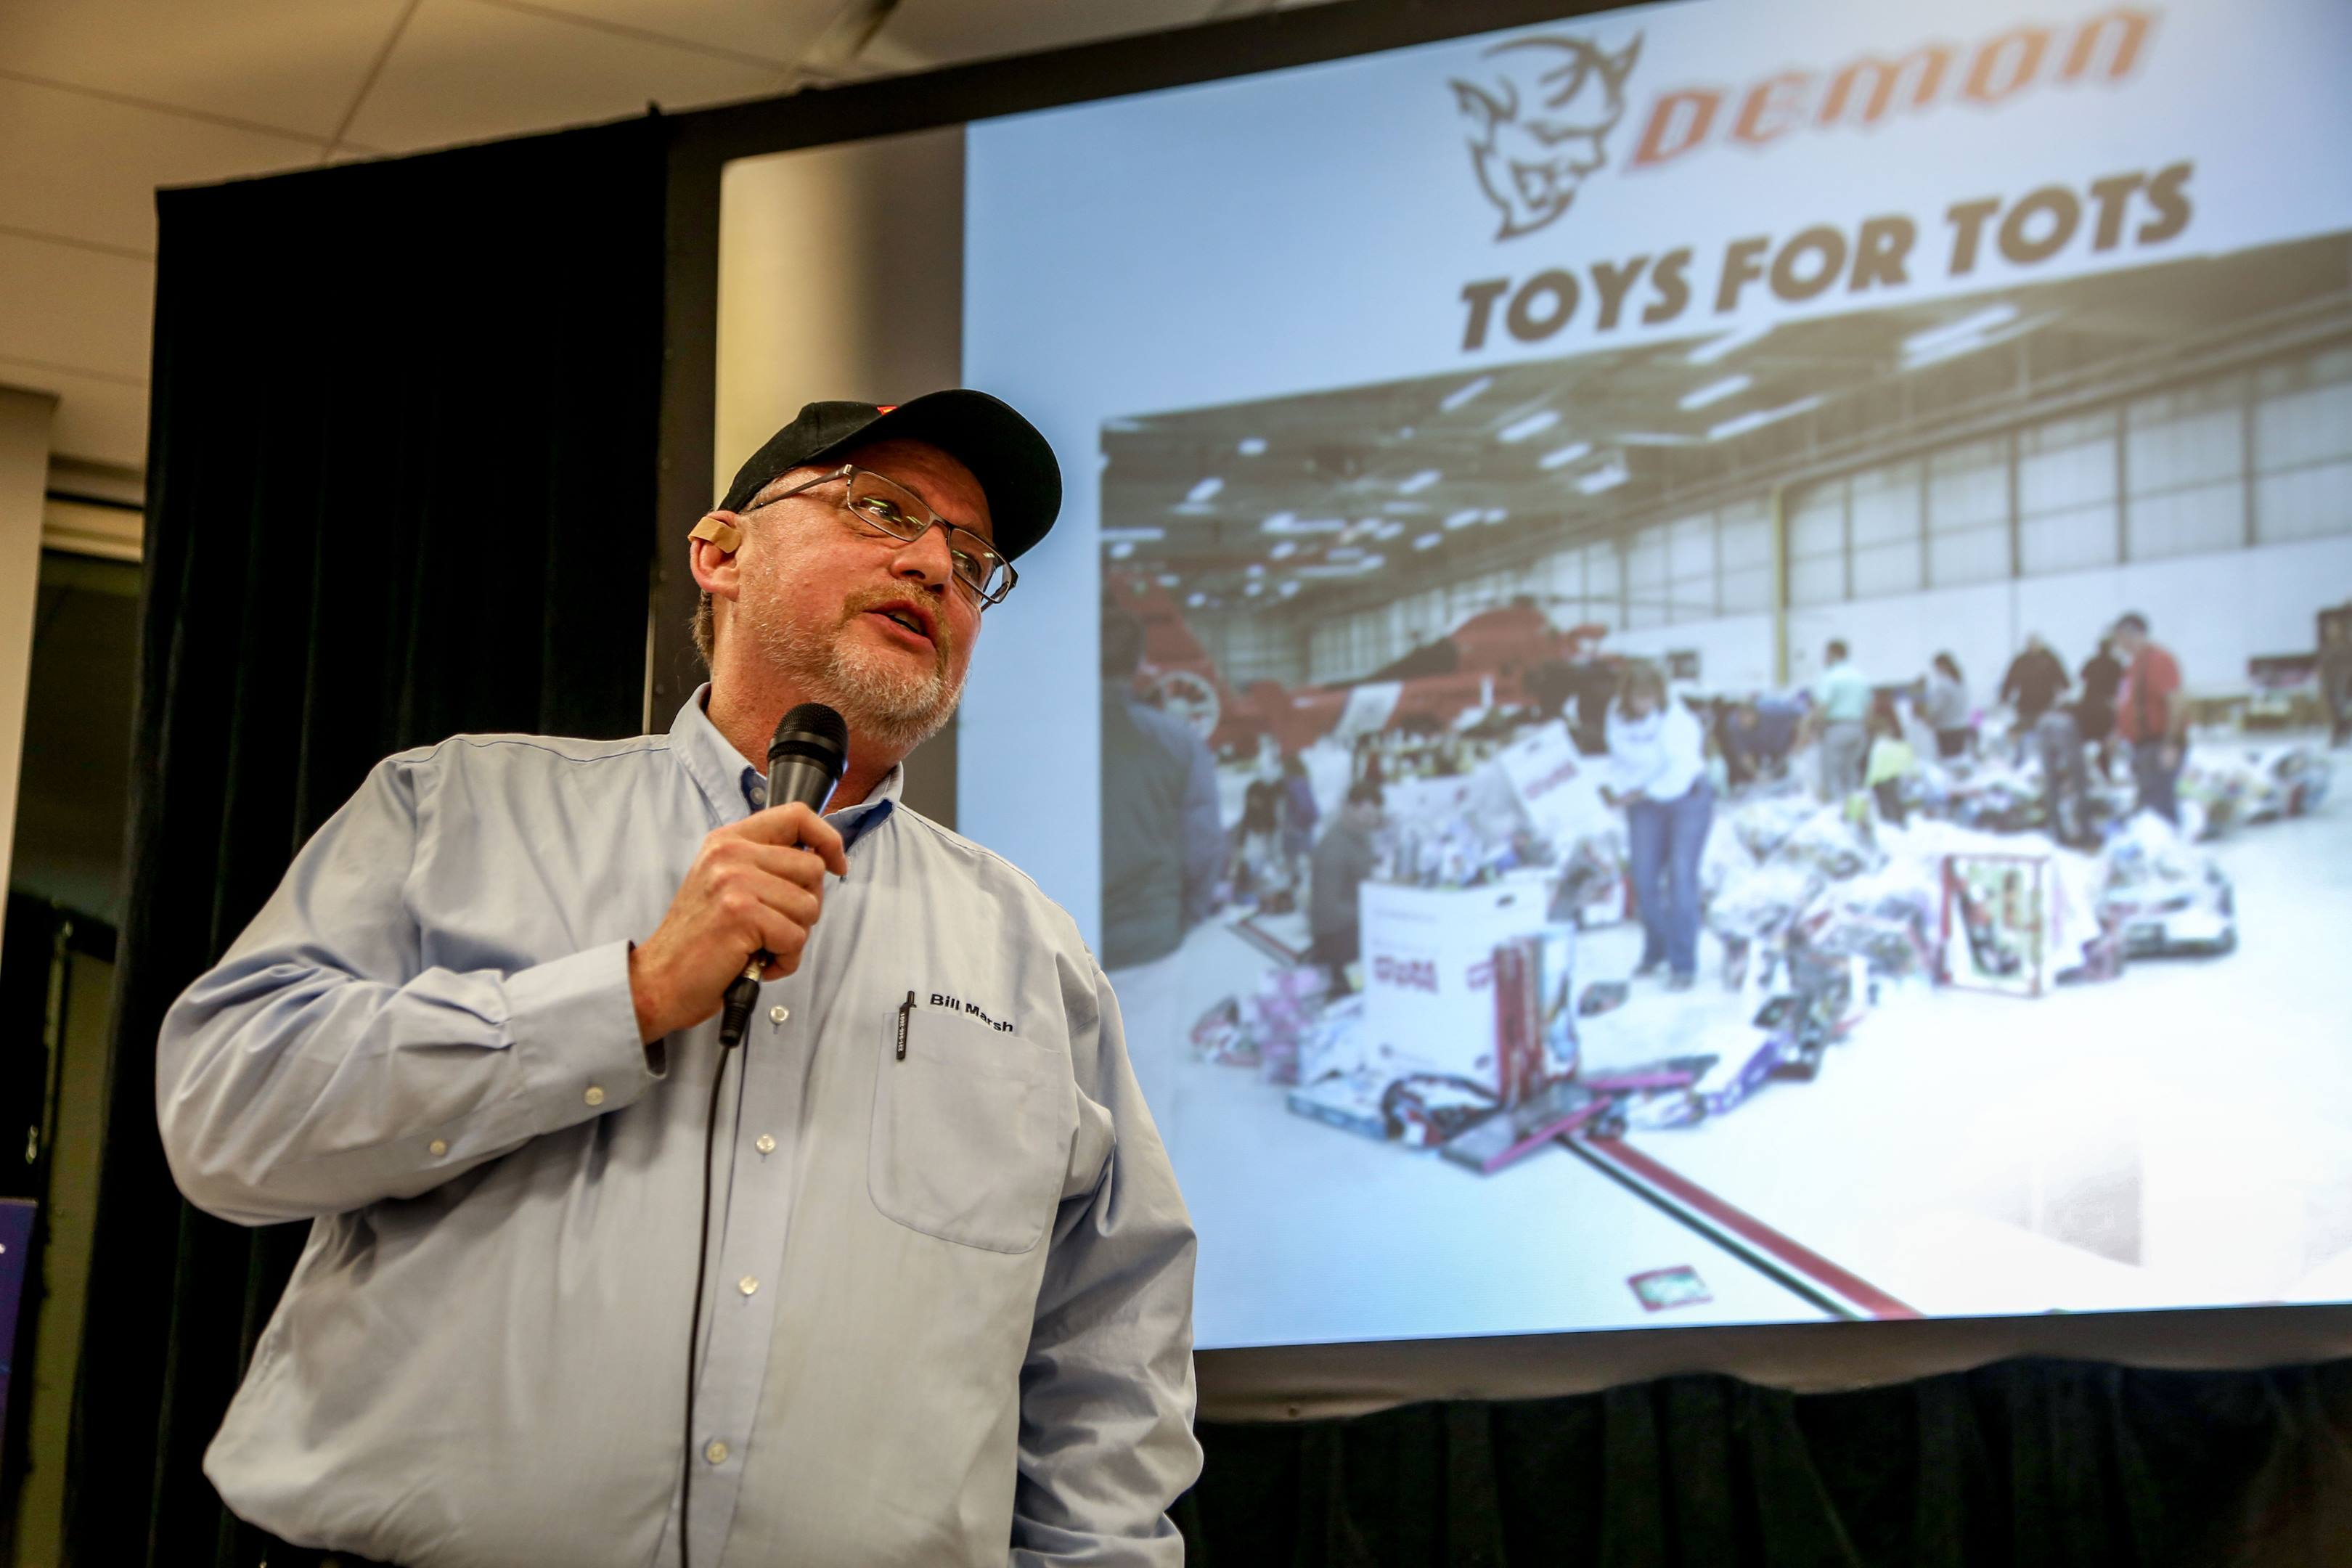 Mike Kent, marketing director for Marsh Auto and spokesperson for Toys for Tots